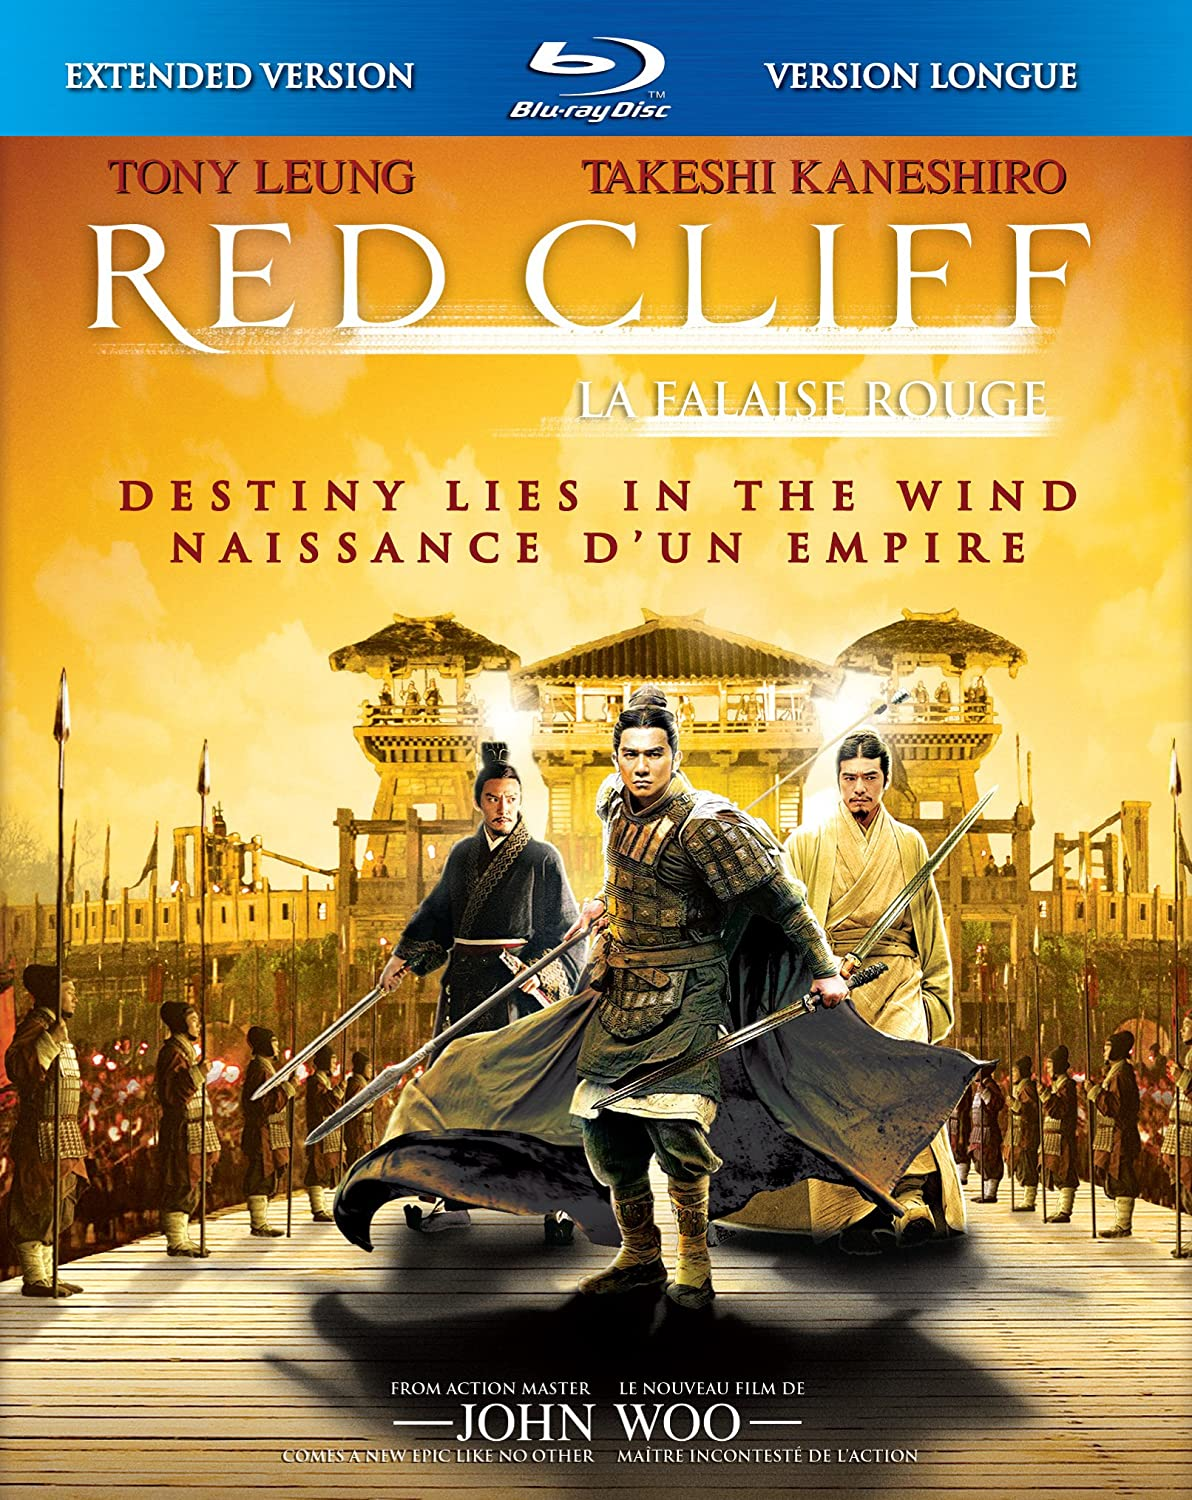 Red Cliff (Extended Version) [Blu-ray] (Sous-titres français) Seville Pictures Action & Adventure